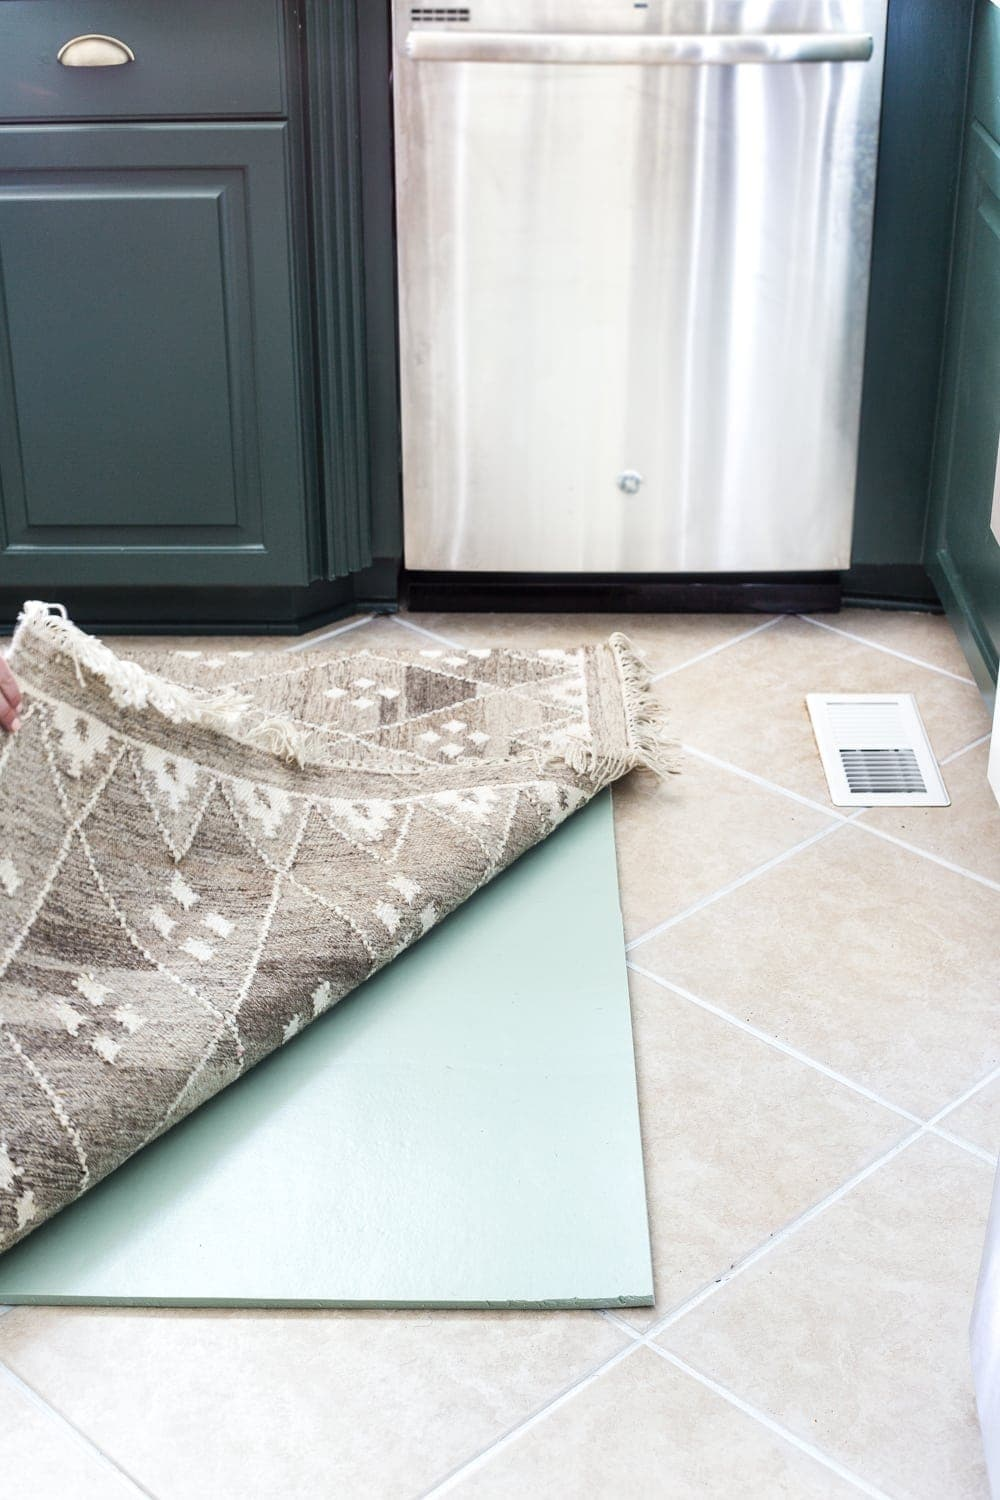 layered memory foam kitchen rug trick to add comfort on hard tile floors